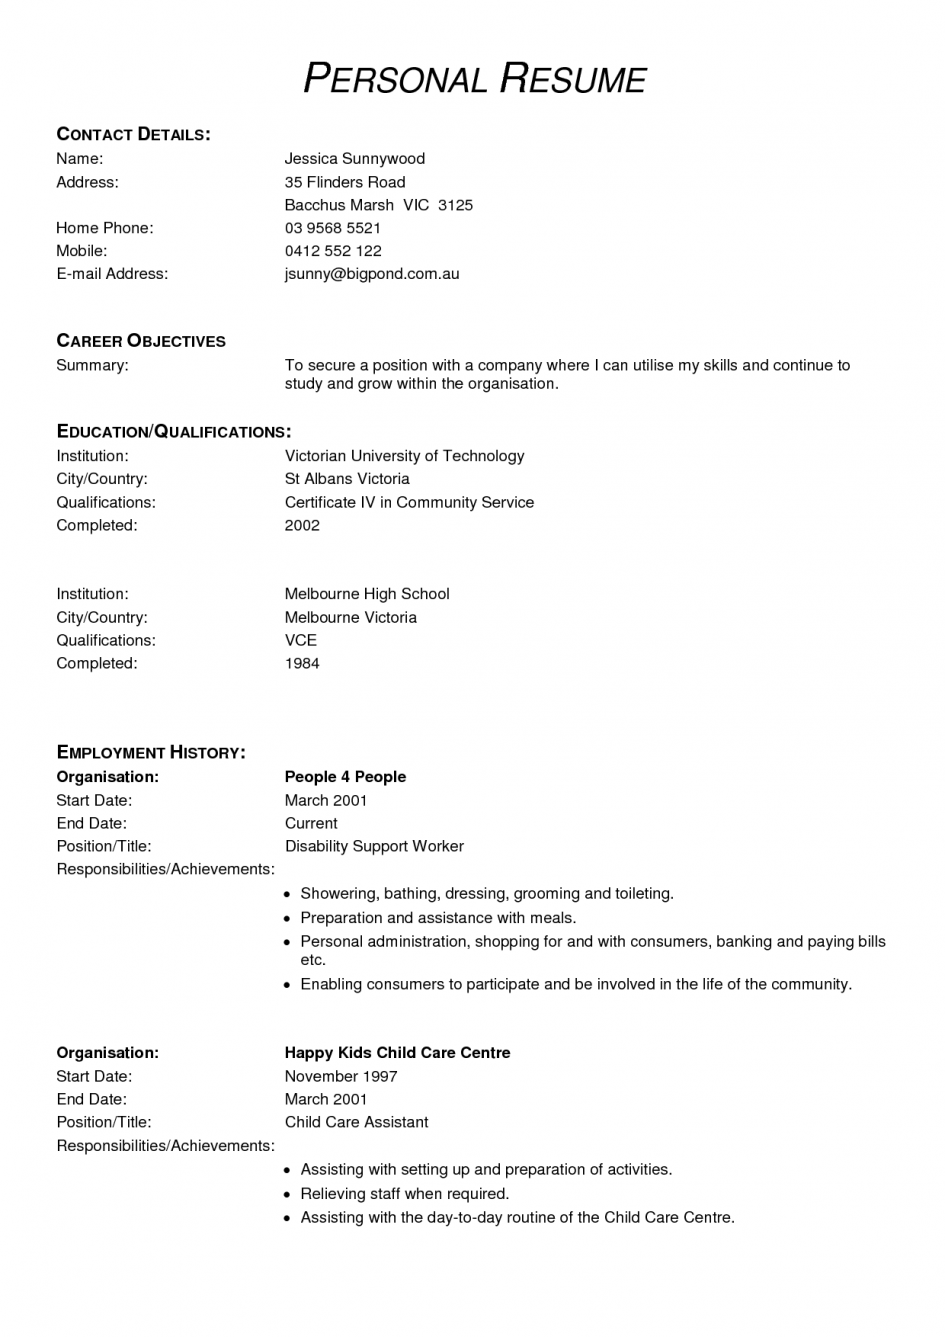 No Experience Resume Template Healthcareassistantcvwithnoexperience 945×1337